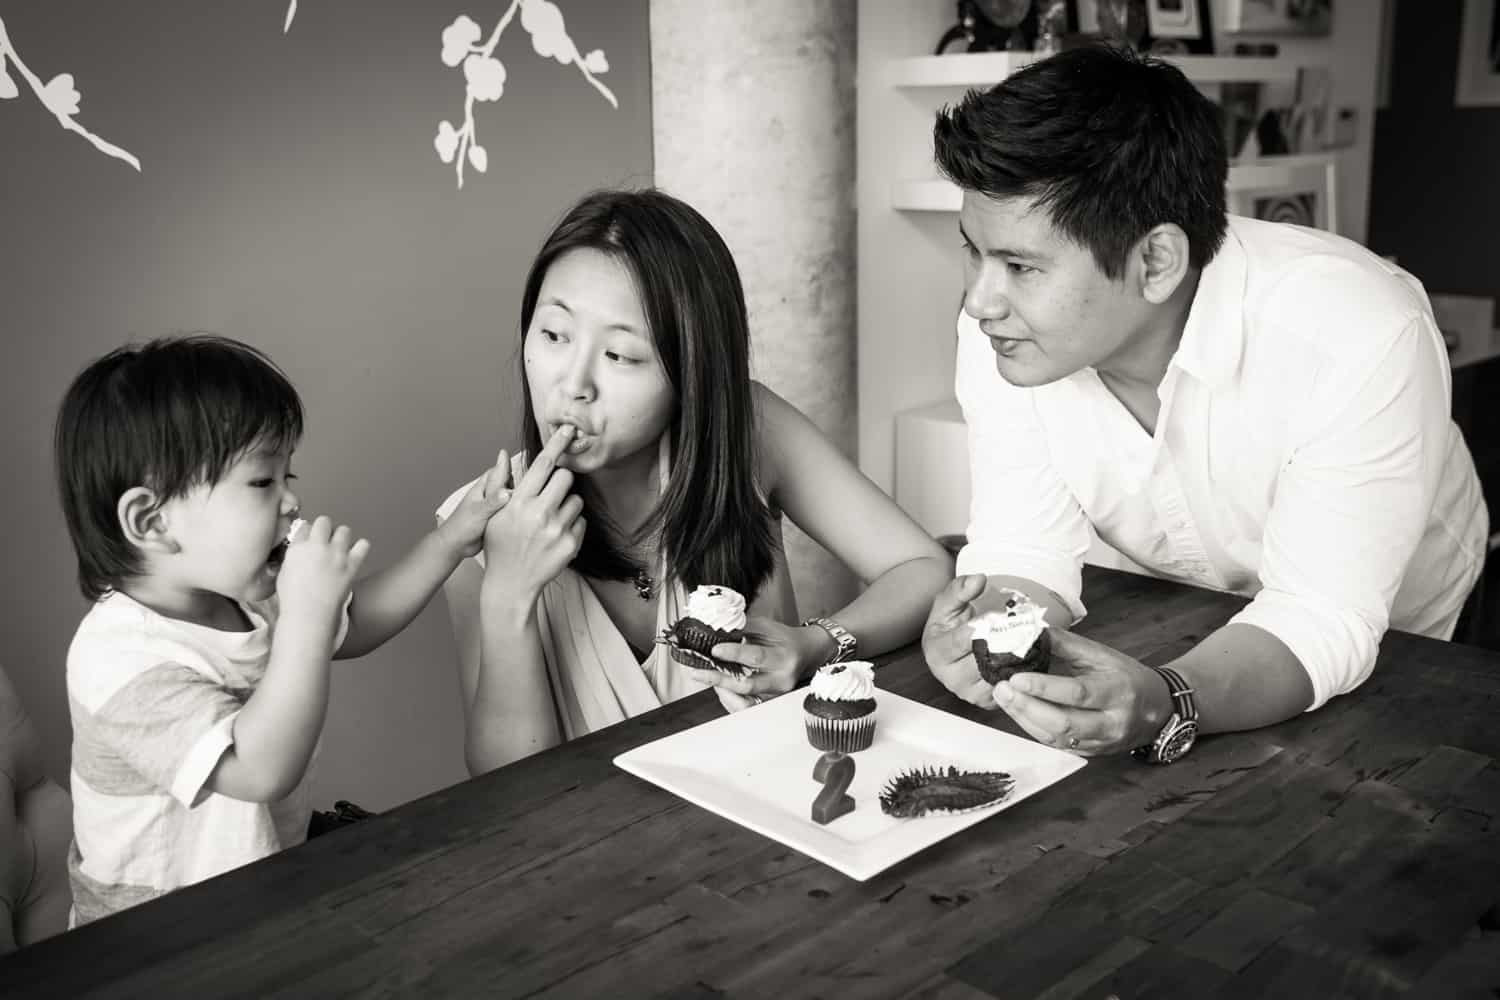 Black and white photo of parents and child eating cupcakes